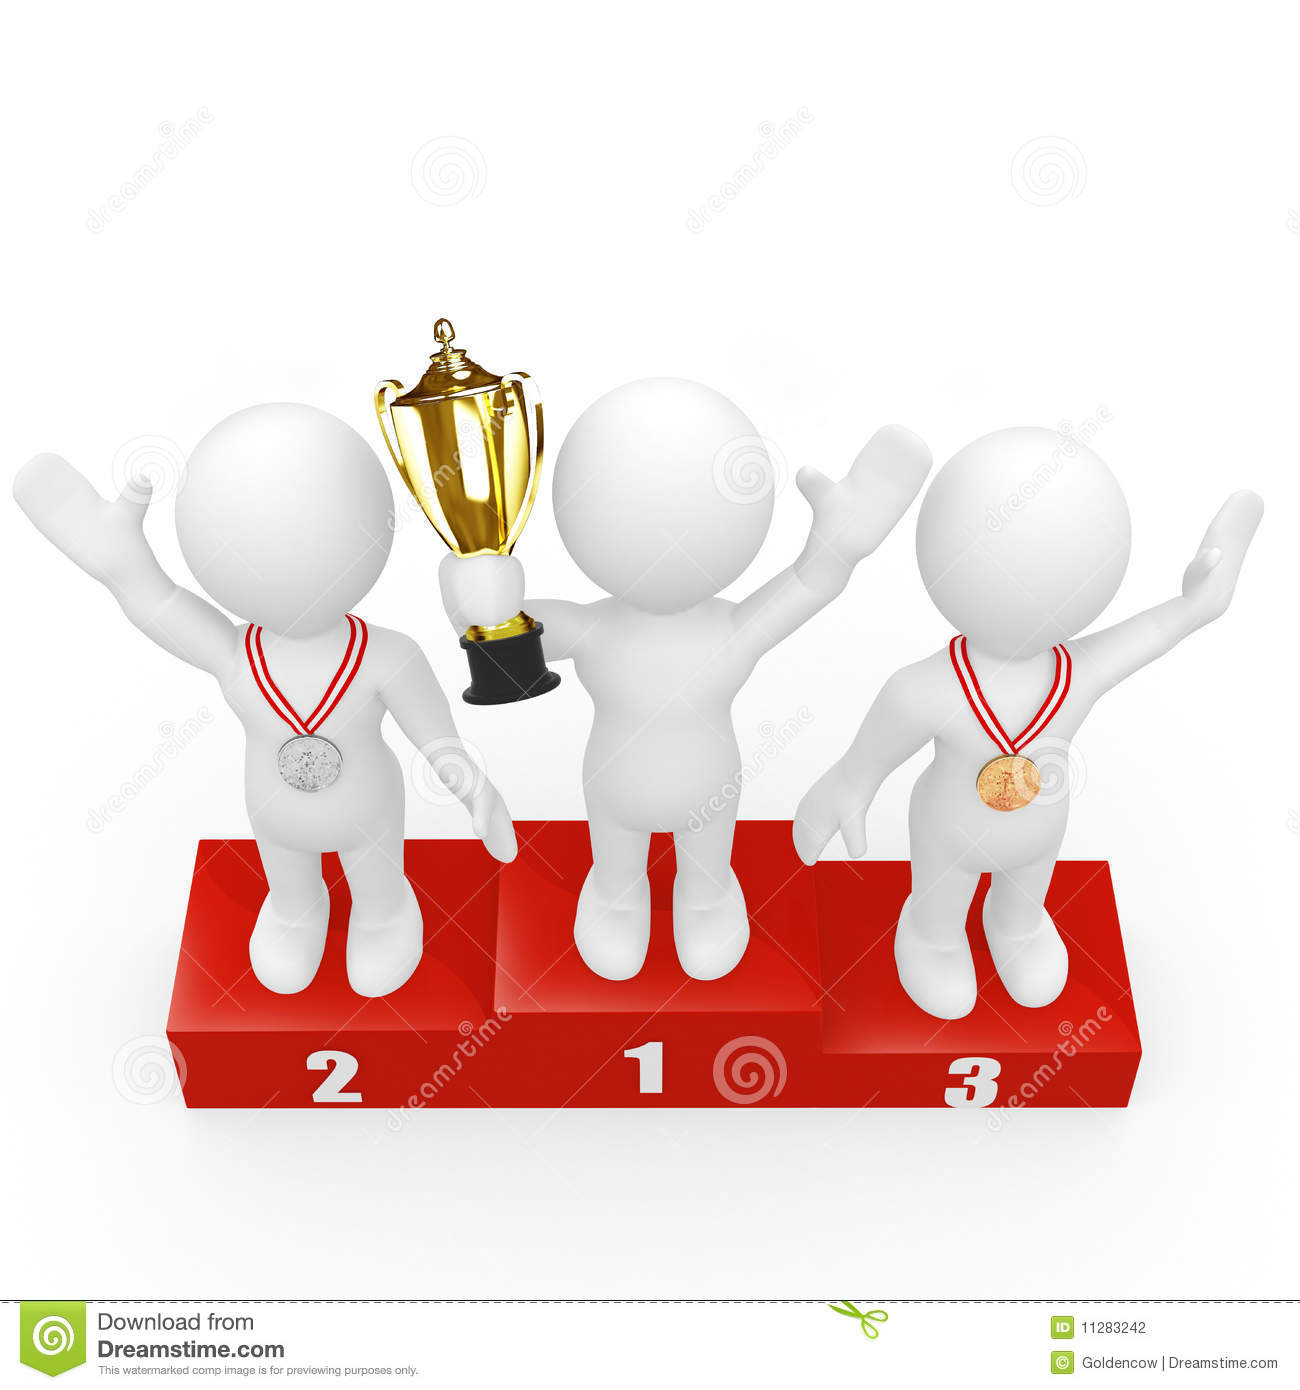 free download character map with Stock Photography 3d Humans Standing Winners Podium Image11283242 on Royalty Free Stock Photography Cartoon Peach Vector Illustration Image35813717 further Number 8 Printable Coloring Sheets For Preschoolers together with Royalty Free Stock Photography Beautiful Girl Image11162457 likewise Tera further Royalty Free Stock Photos Funny Singing Nun Image12375578.